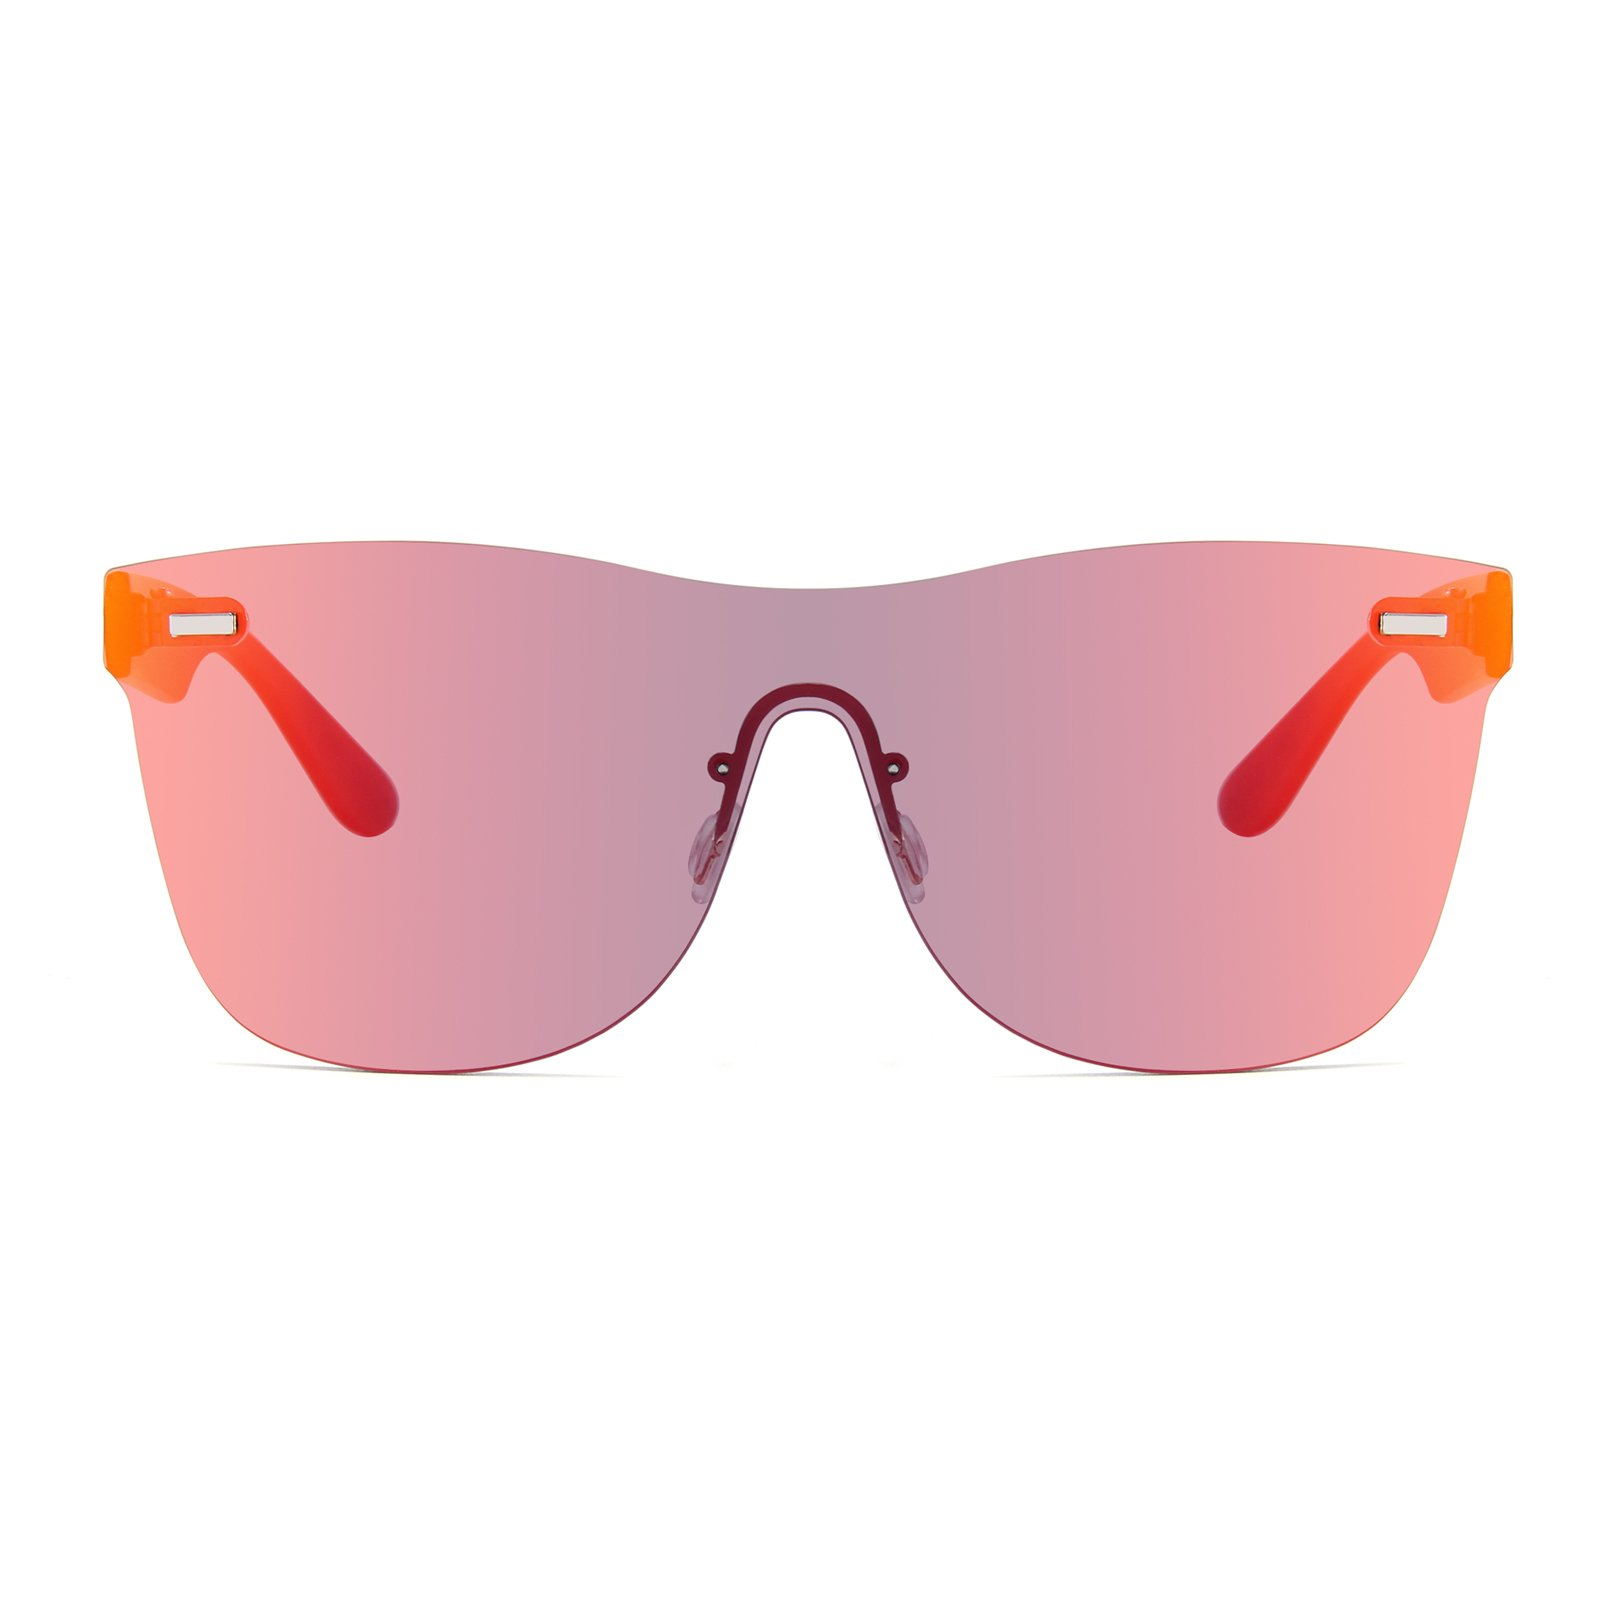 Infinity Fashion Colored Sunglasses-⚡50% Off Today